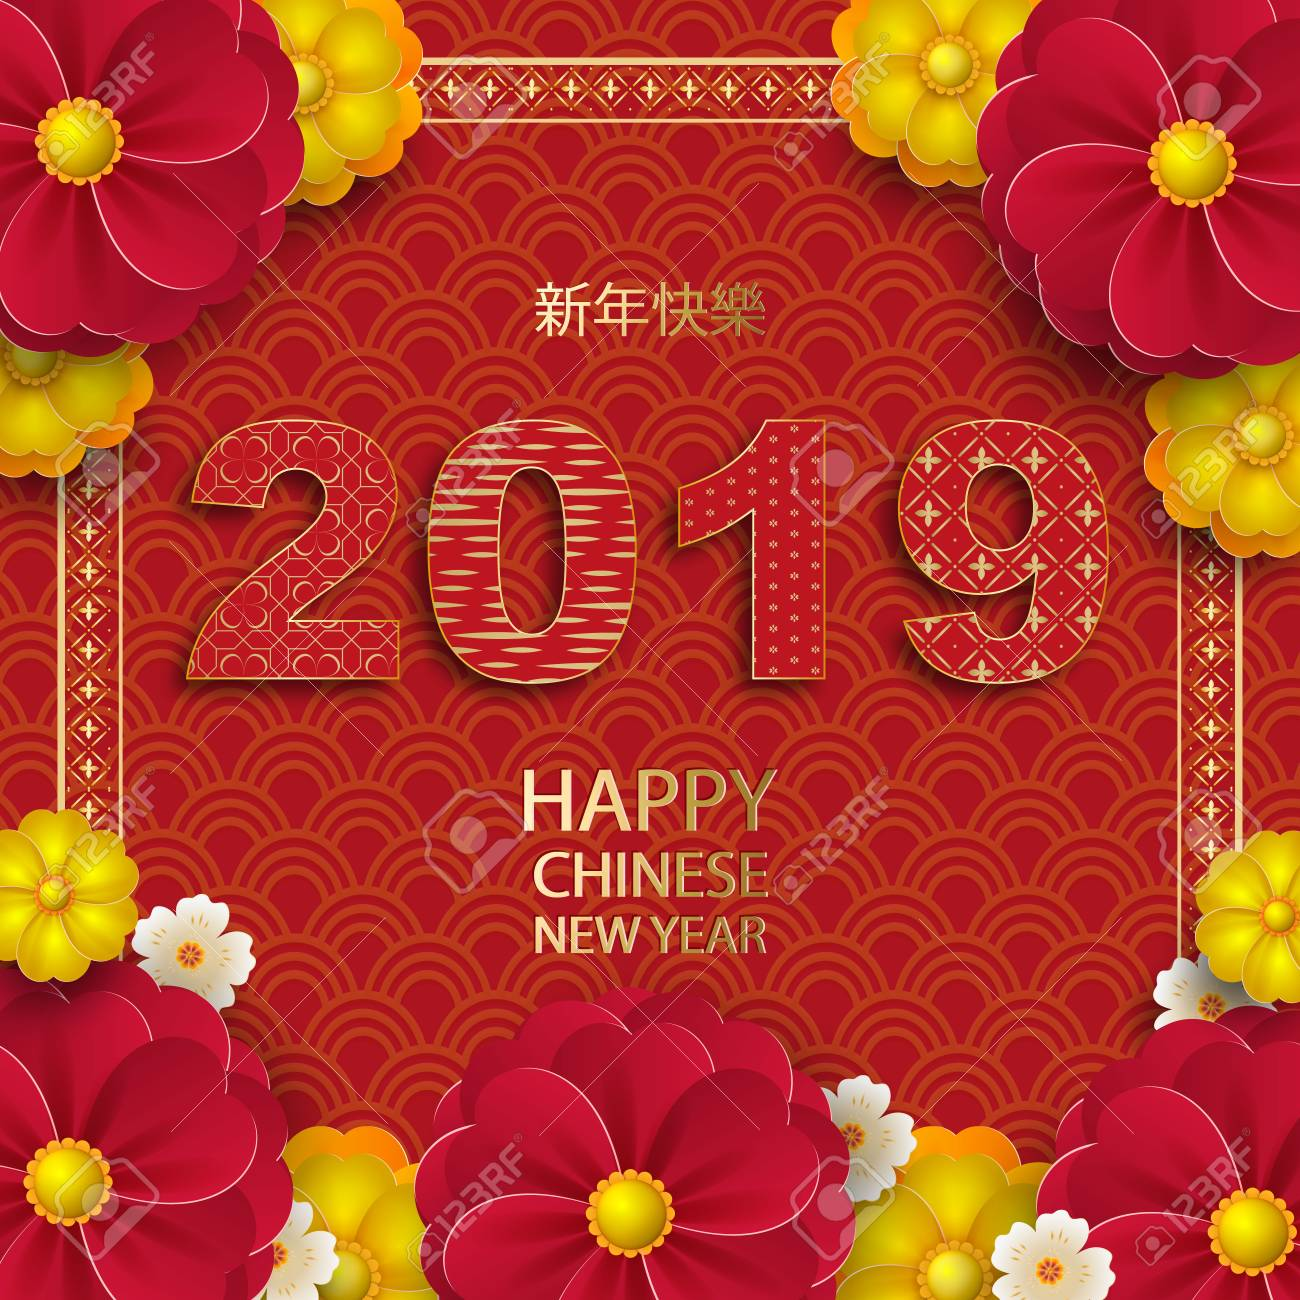 Happy New Year 2019 Chinese New Year Greeting Card Poster Flyer Or Invitation Design With Paper Cut Flowers Translation From Chinese Happy New